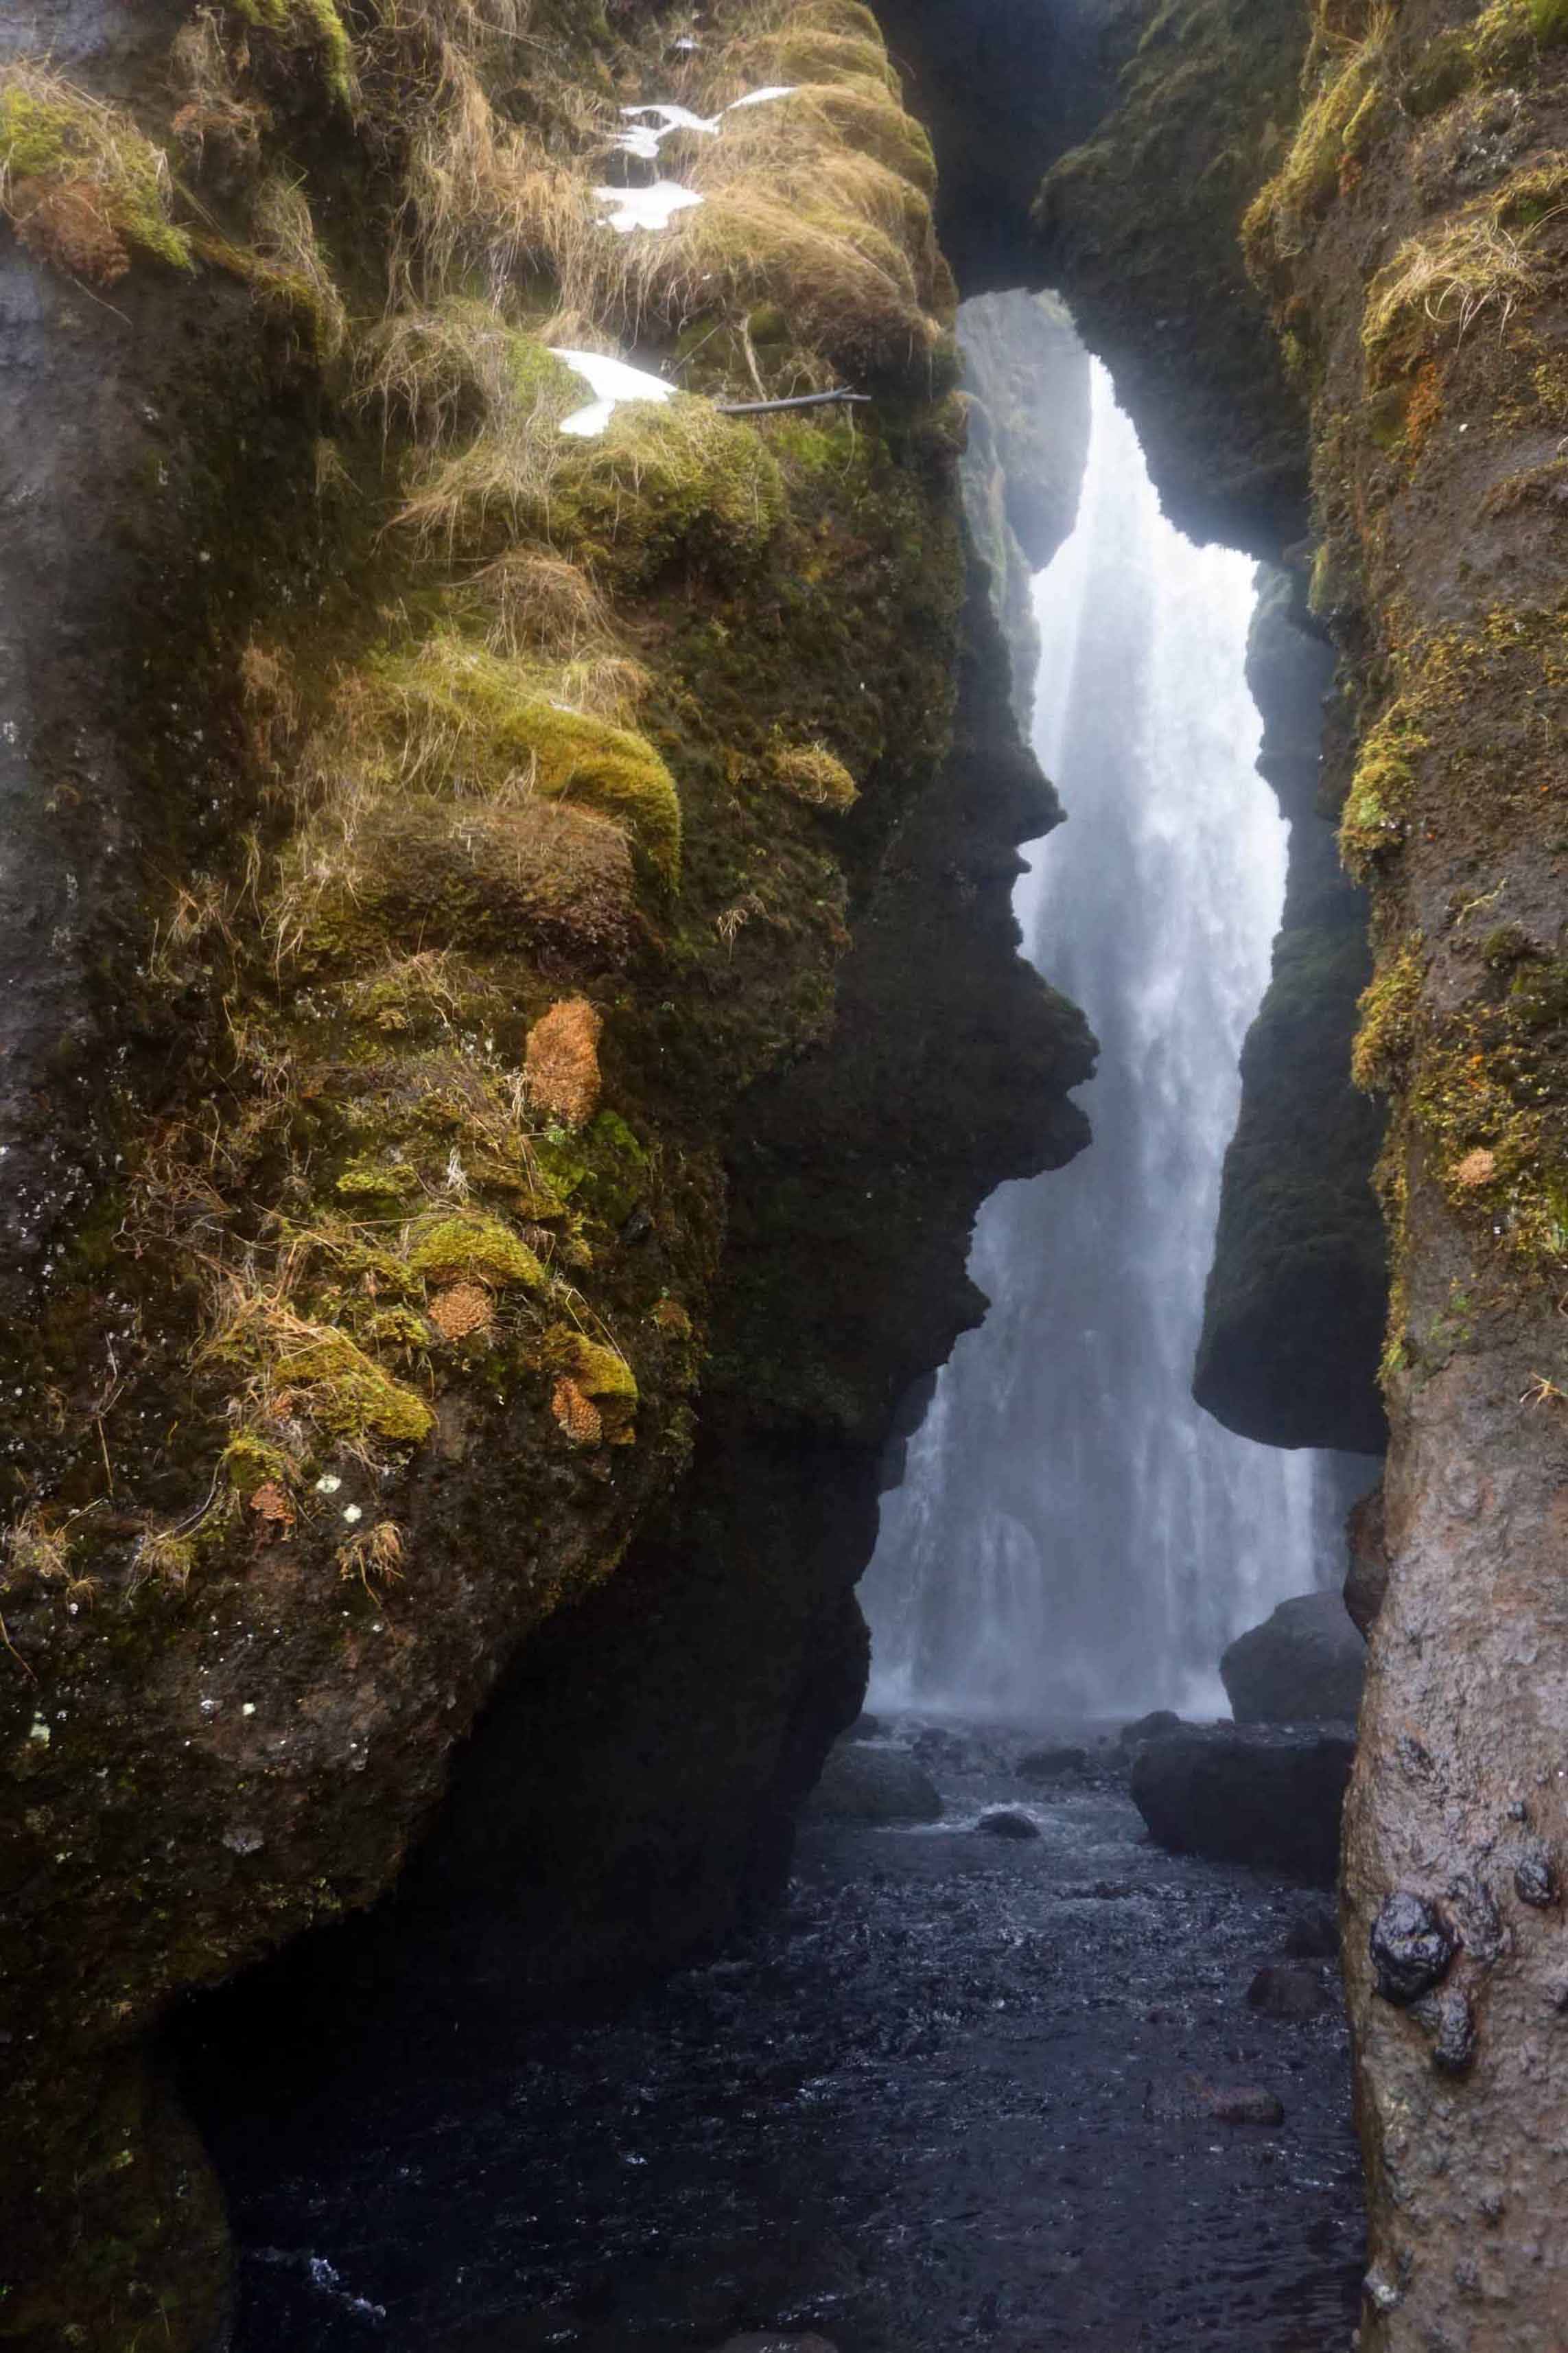 Entrance to the cavern hiding the Gljufrabui waterfall in Iceland